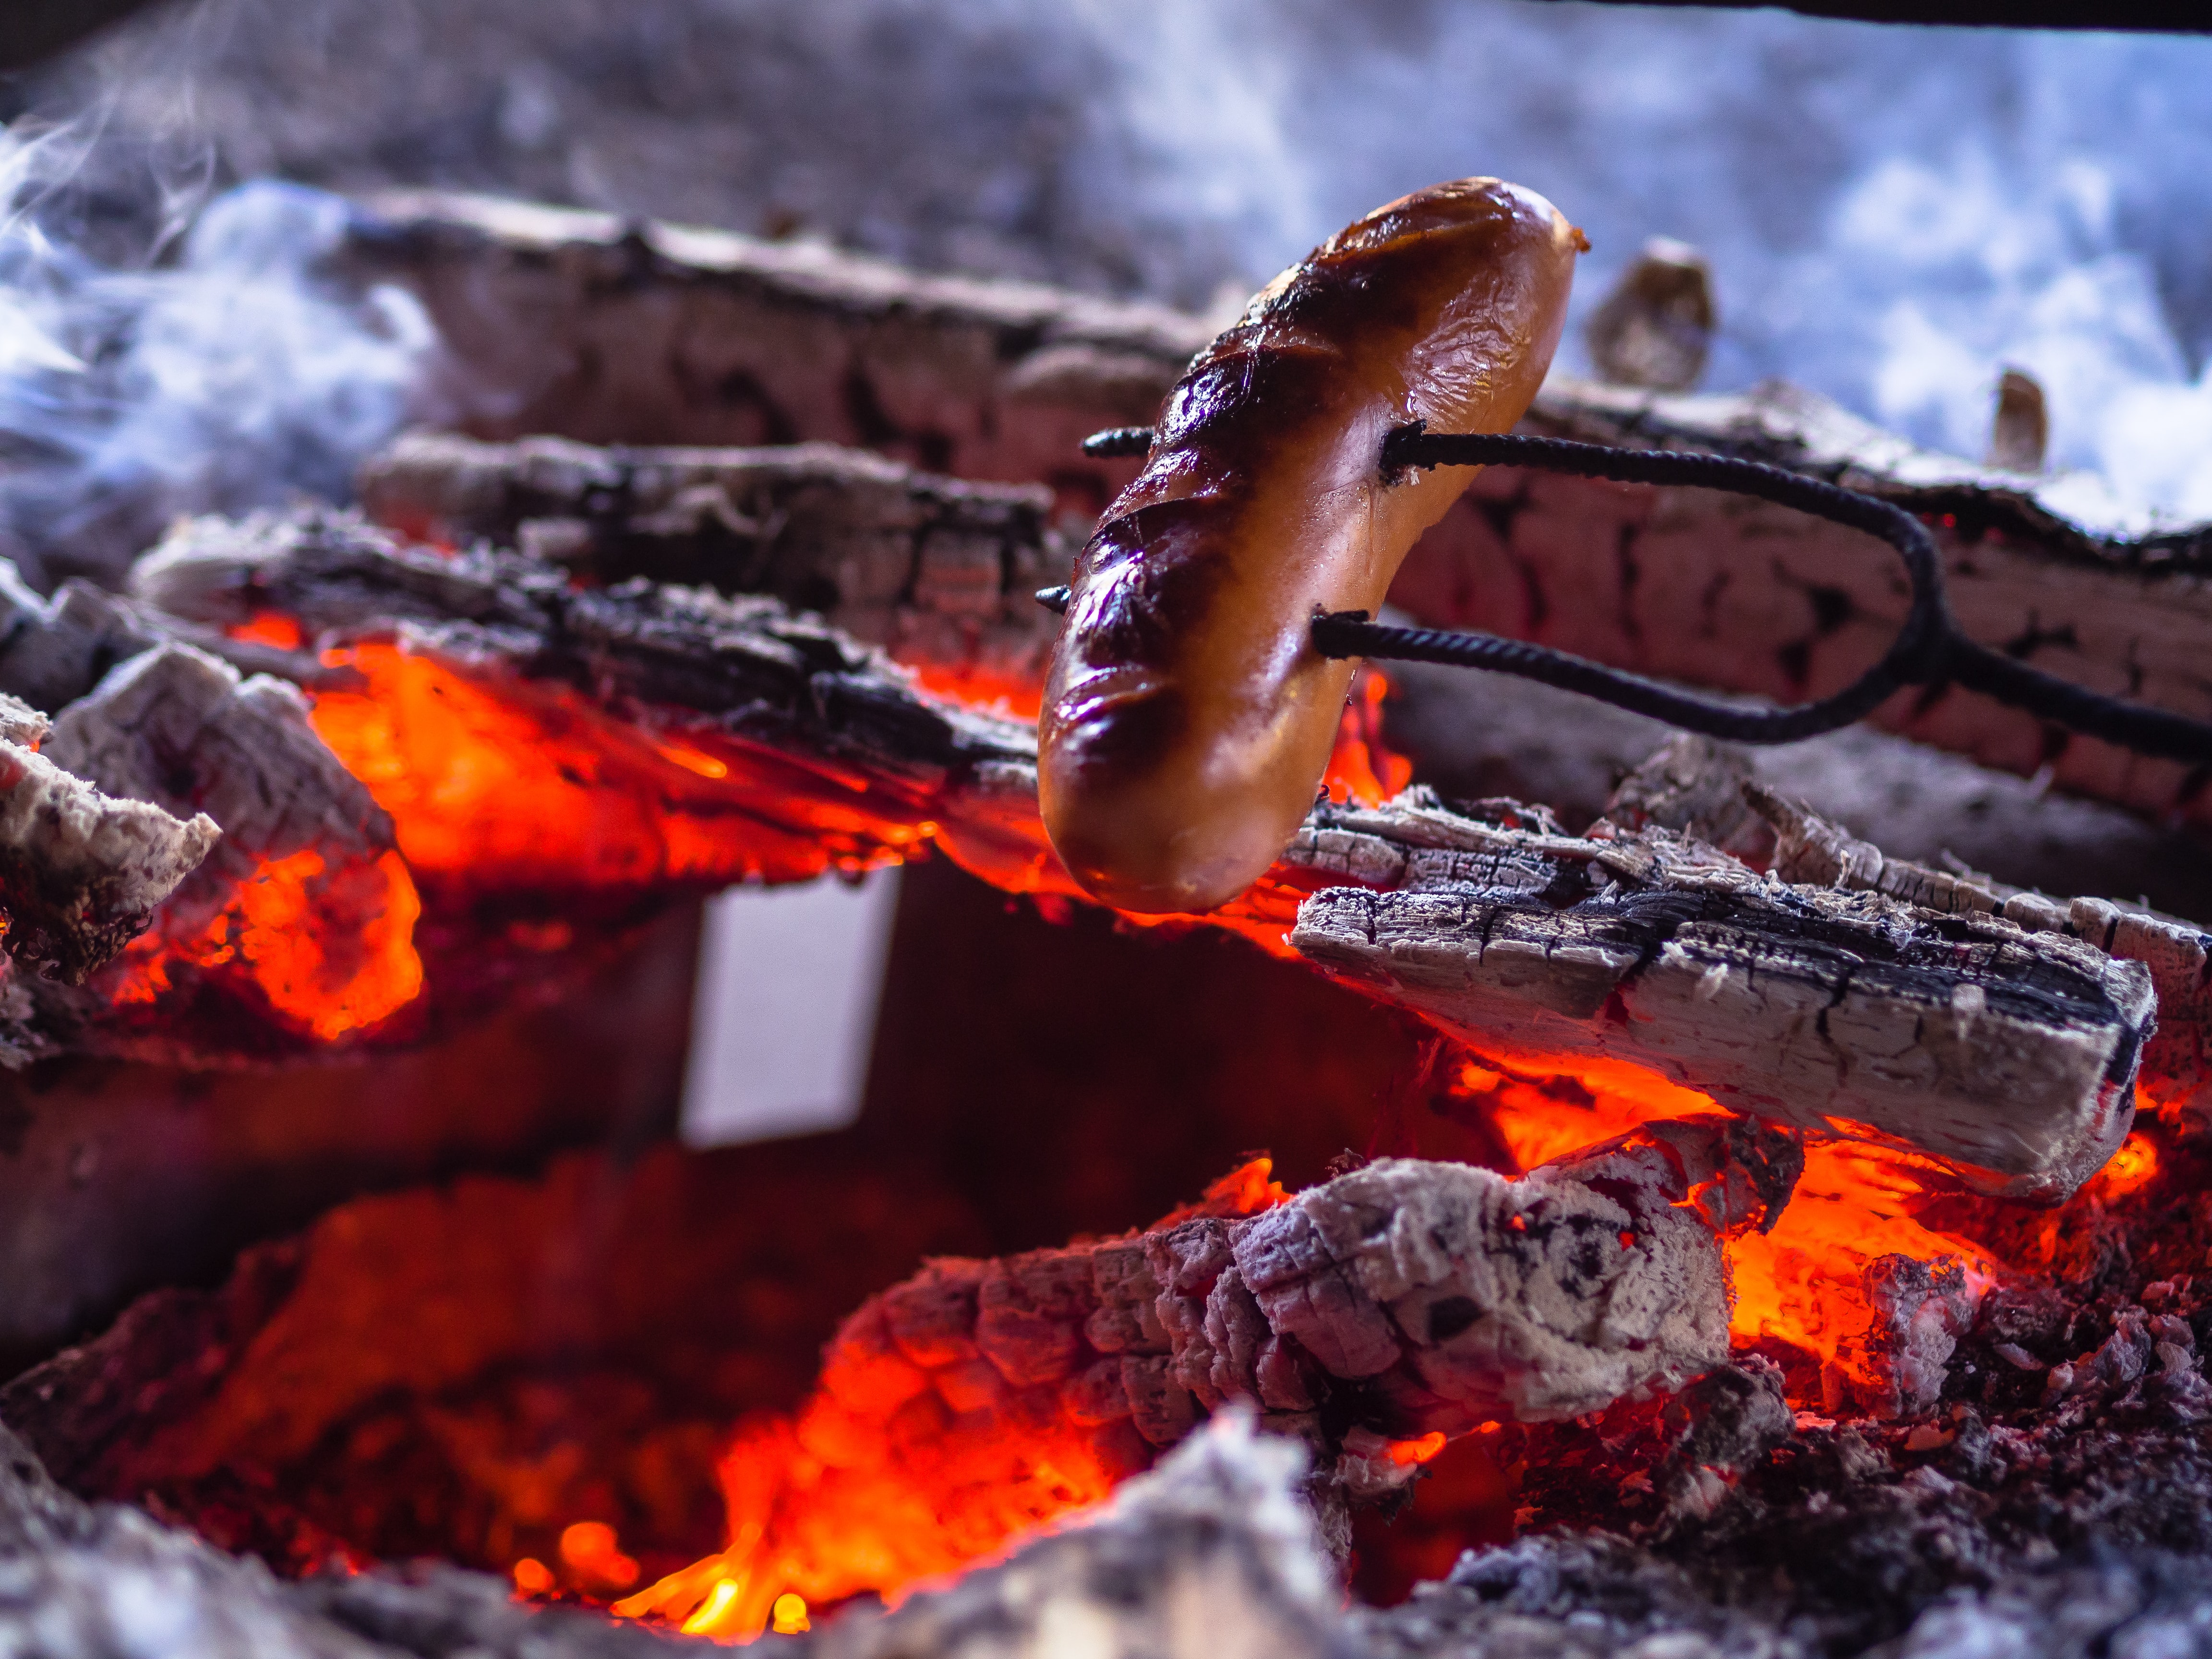 brown sausage on charcoal grill